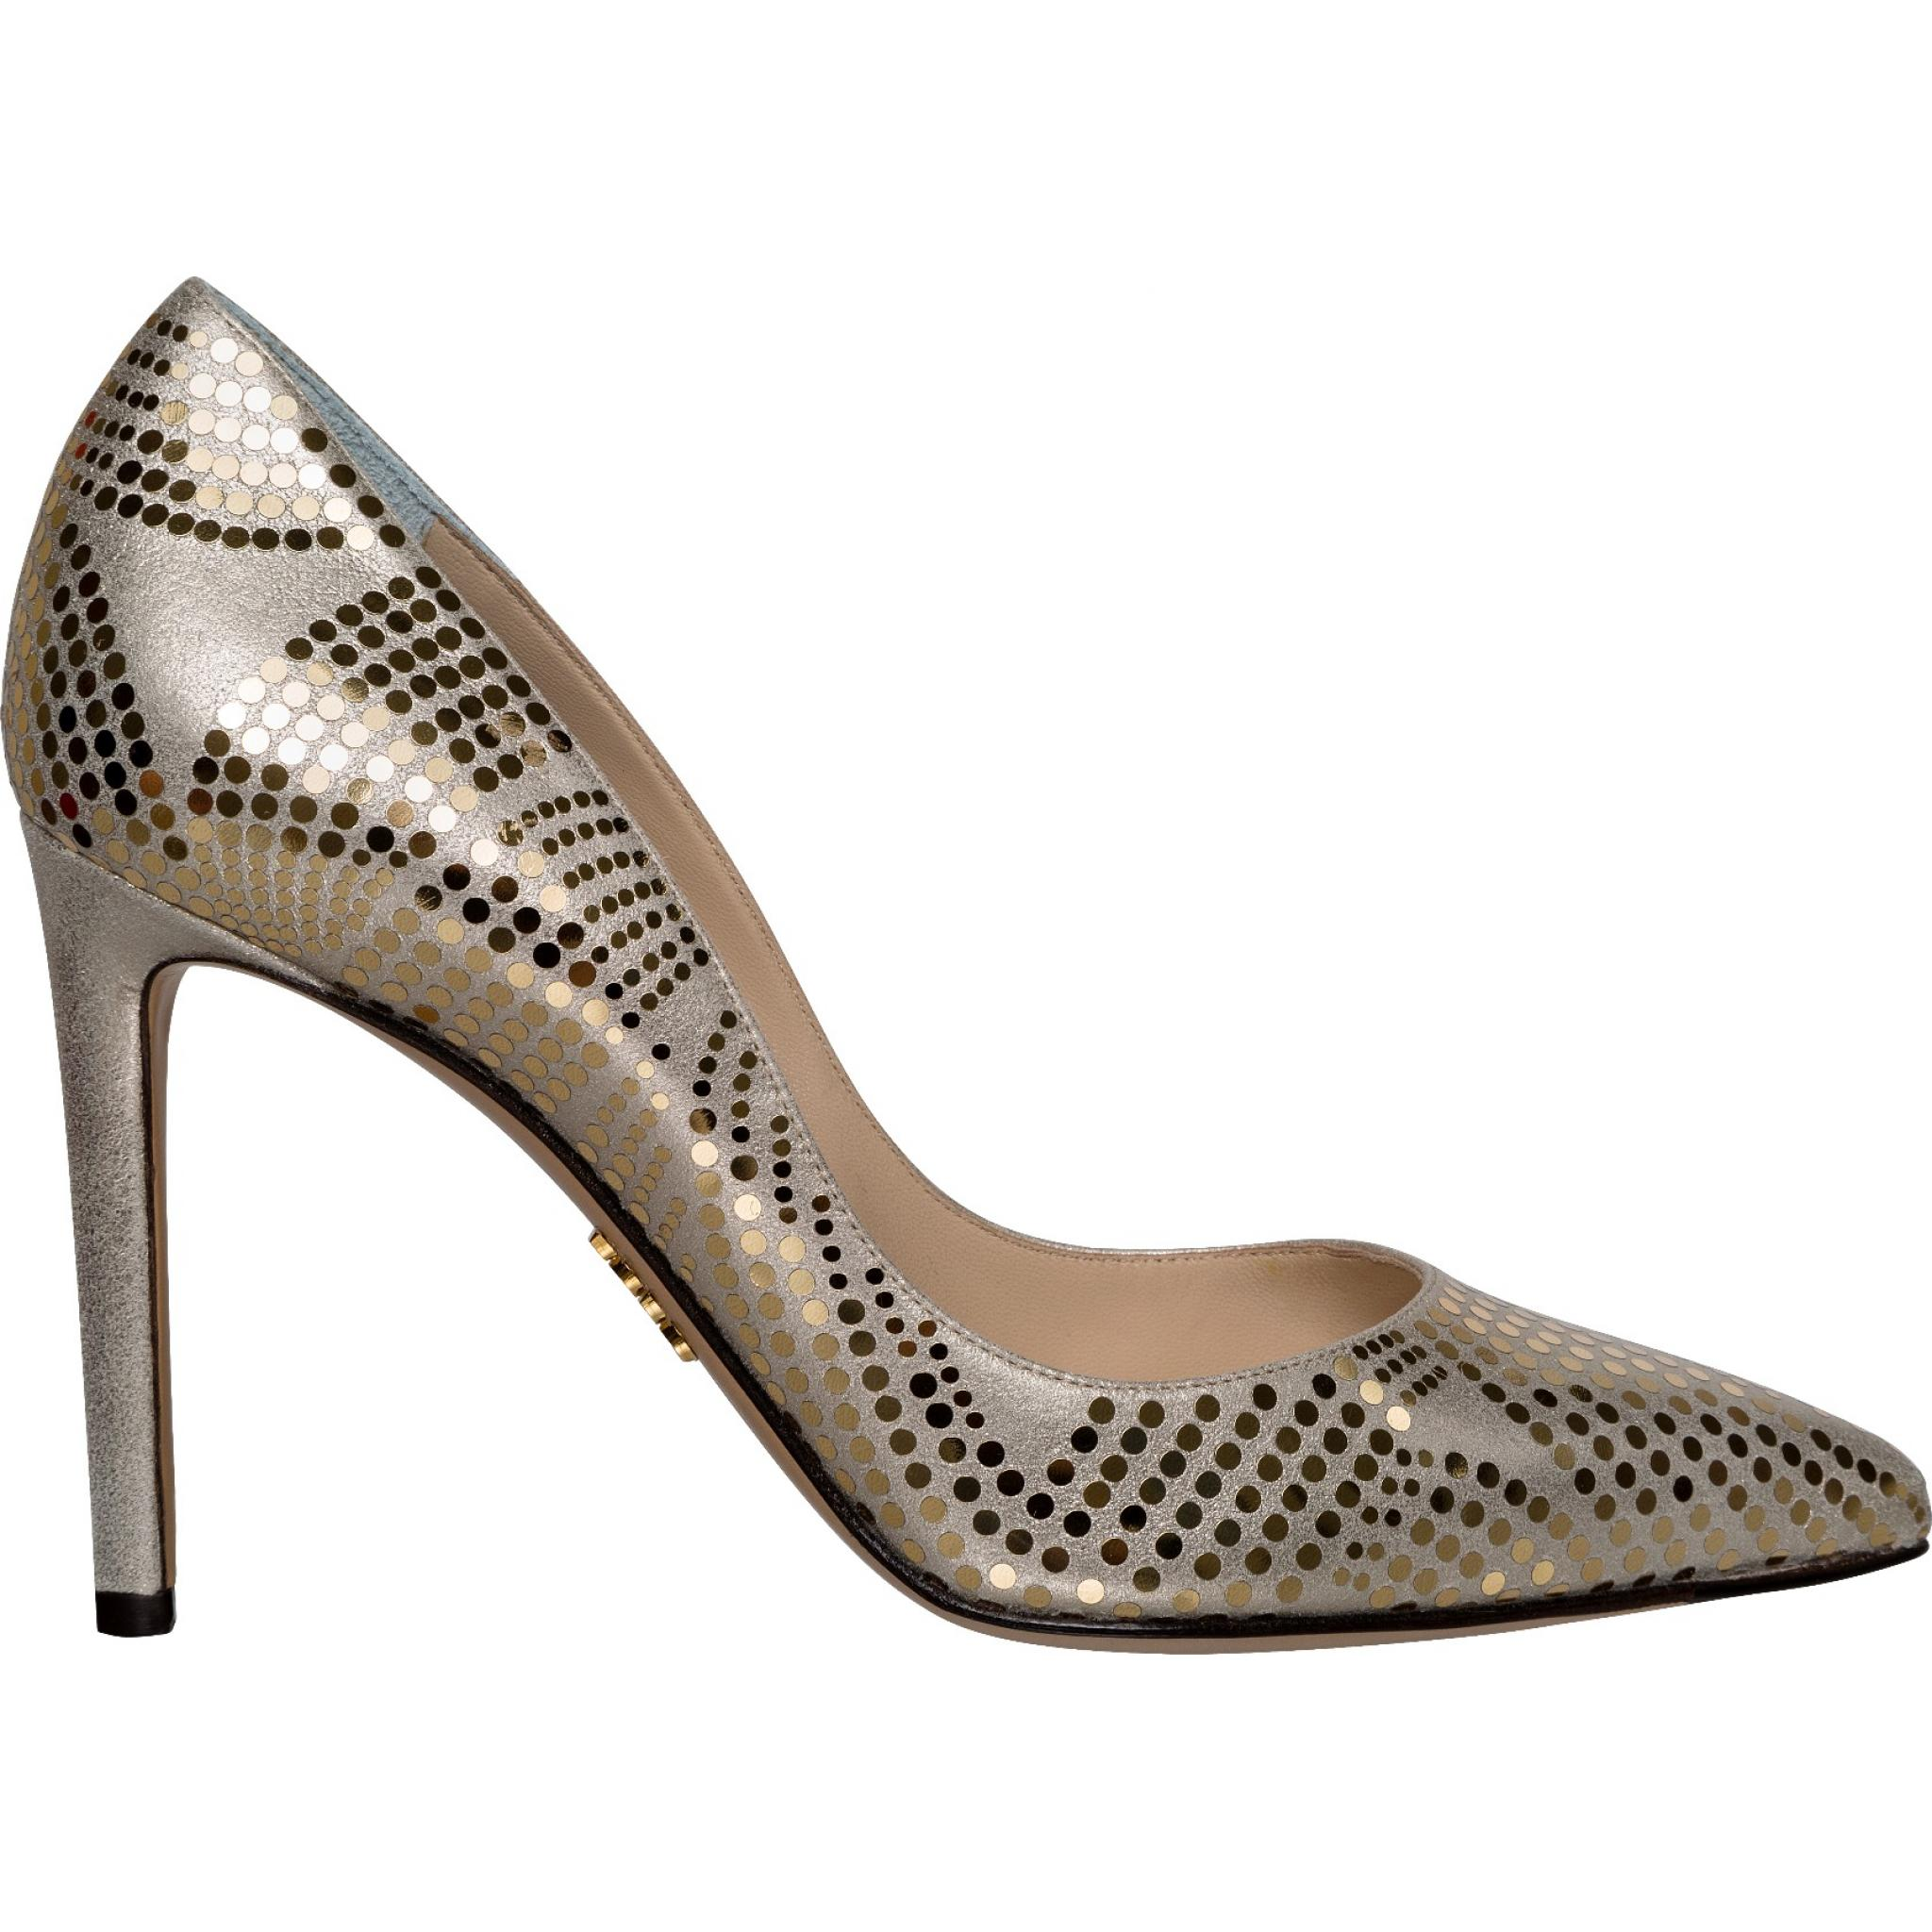 Pumps in Metallic-Leder mit Pailletten-Besatz-0